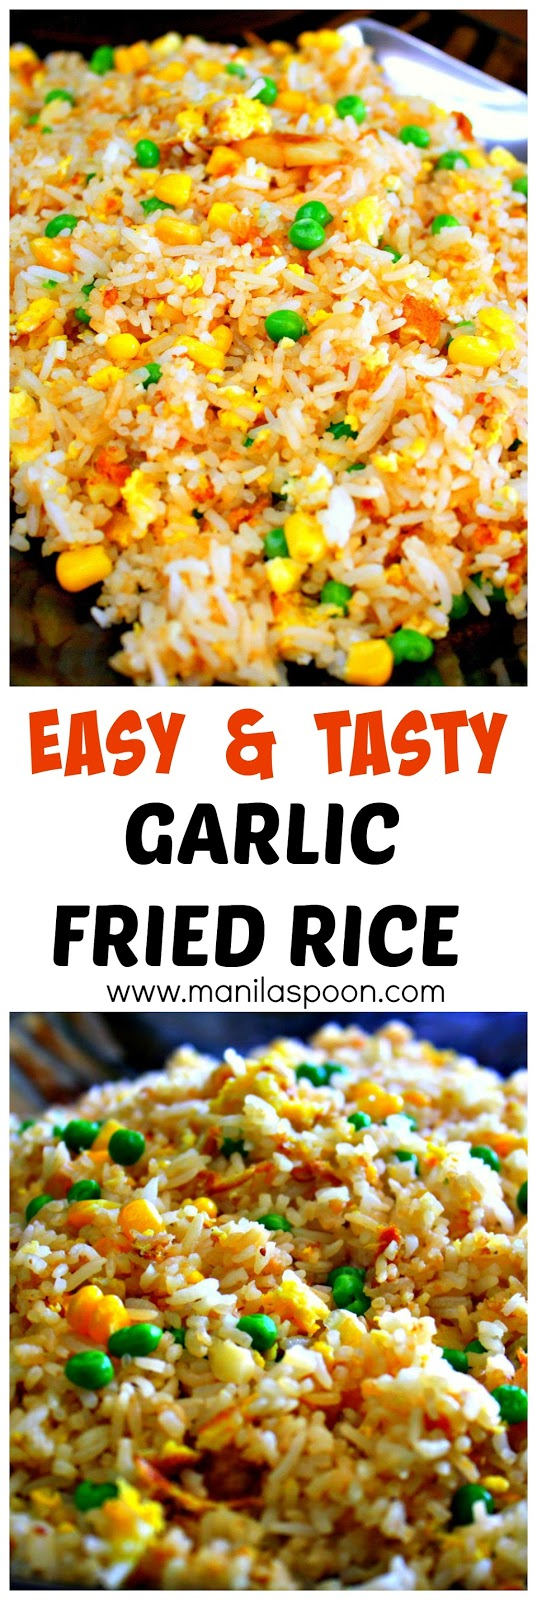 Easy garlic fried rice sinangag manila spoon no need to throw left over rice when you can make this easy tasty ccuart Images